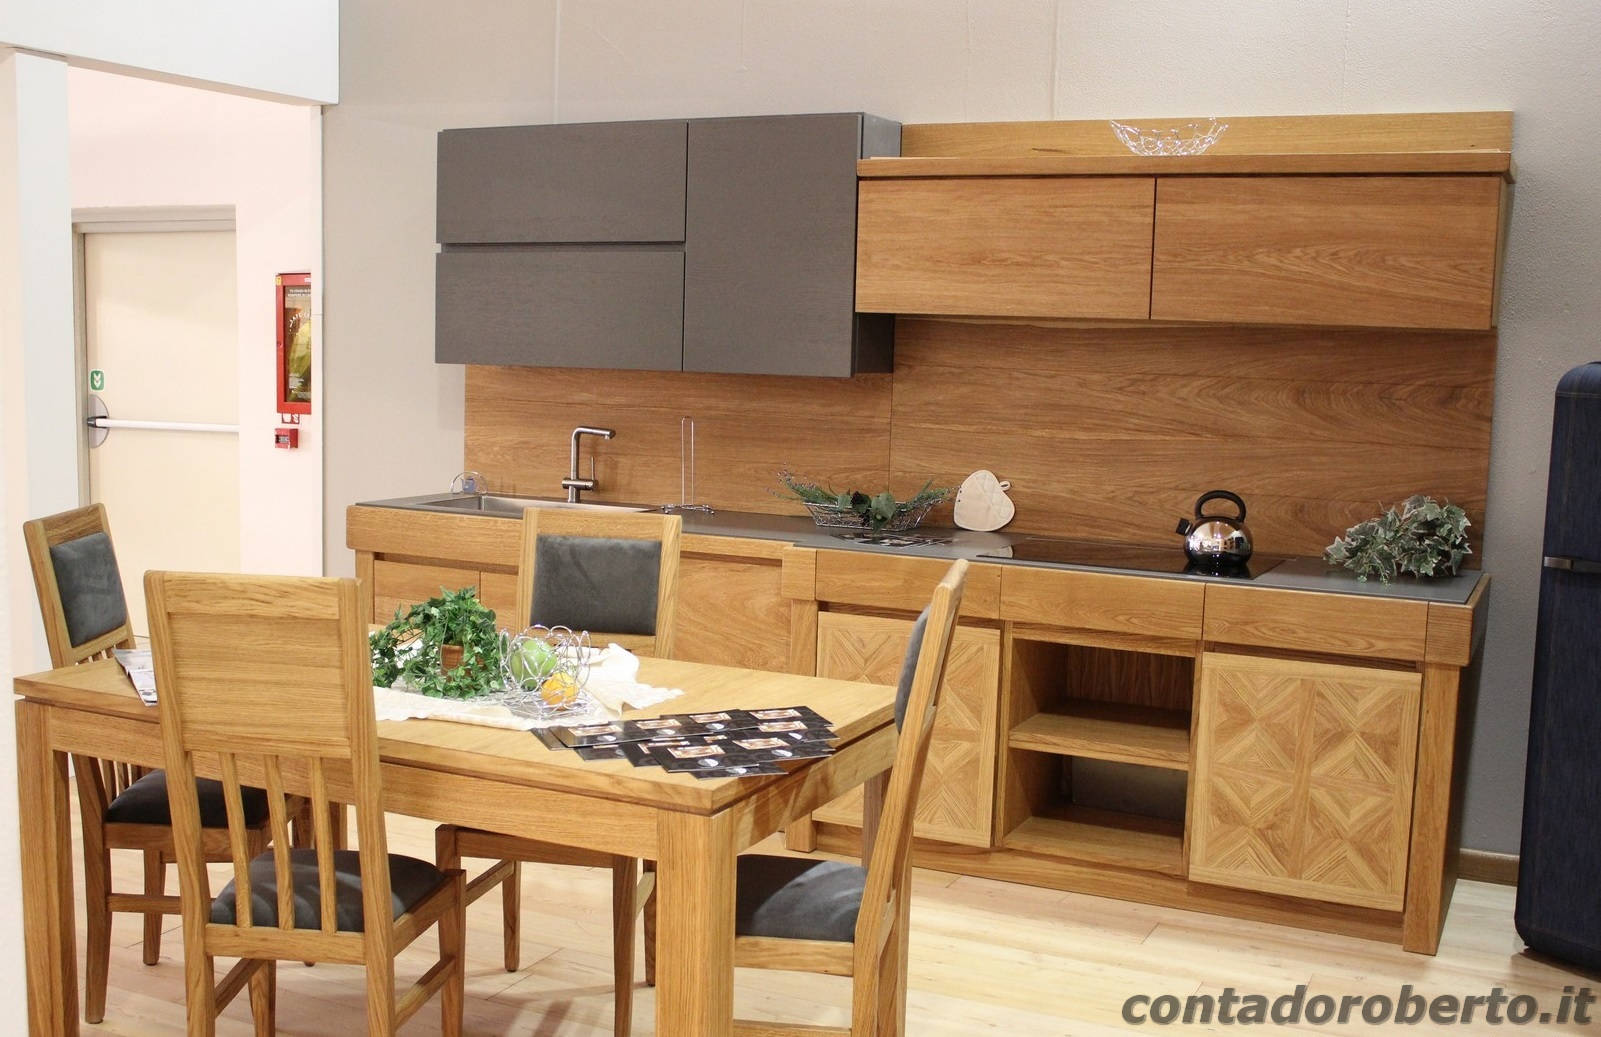 Emejing Cucine Rovere Naturale Images - Ideas & Design 2017 ...